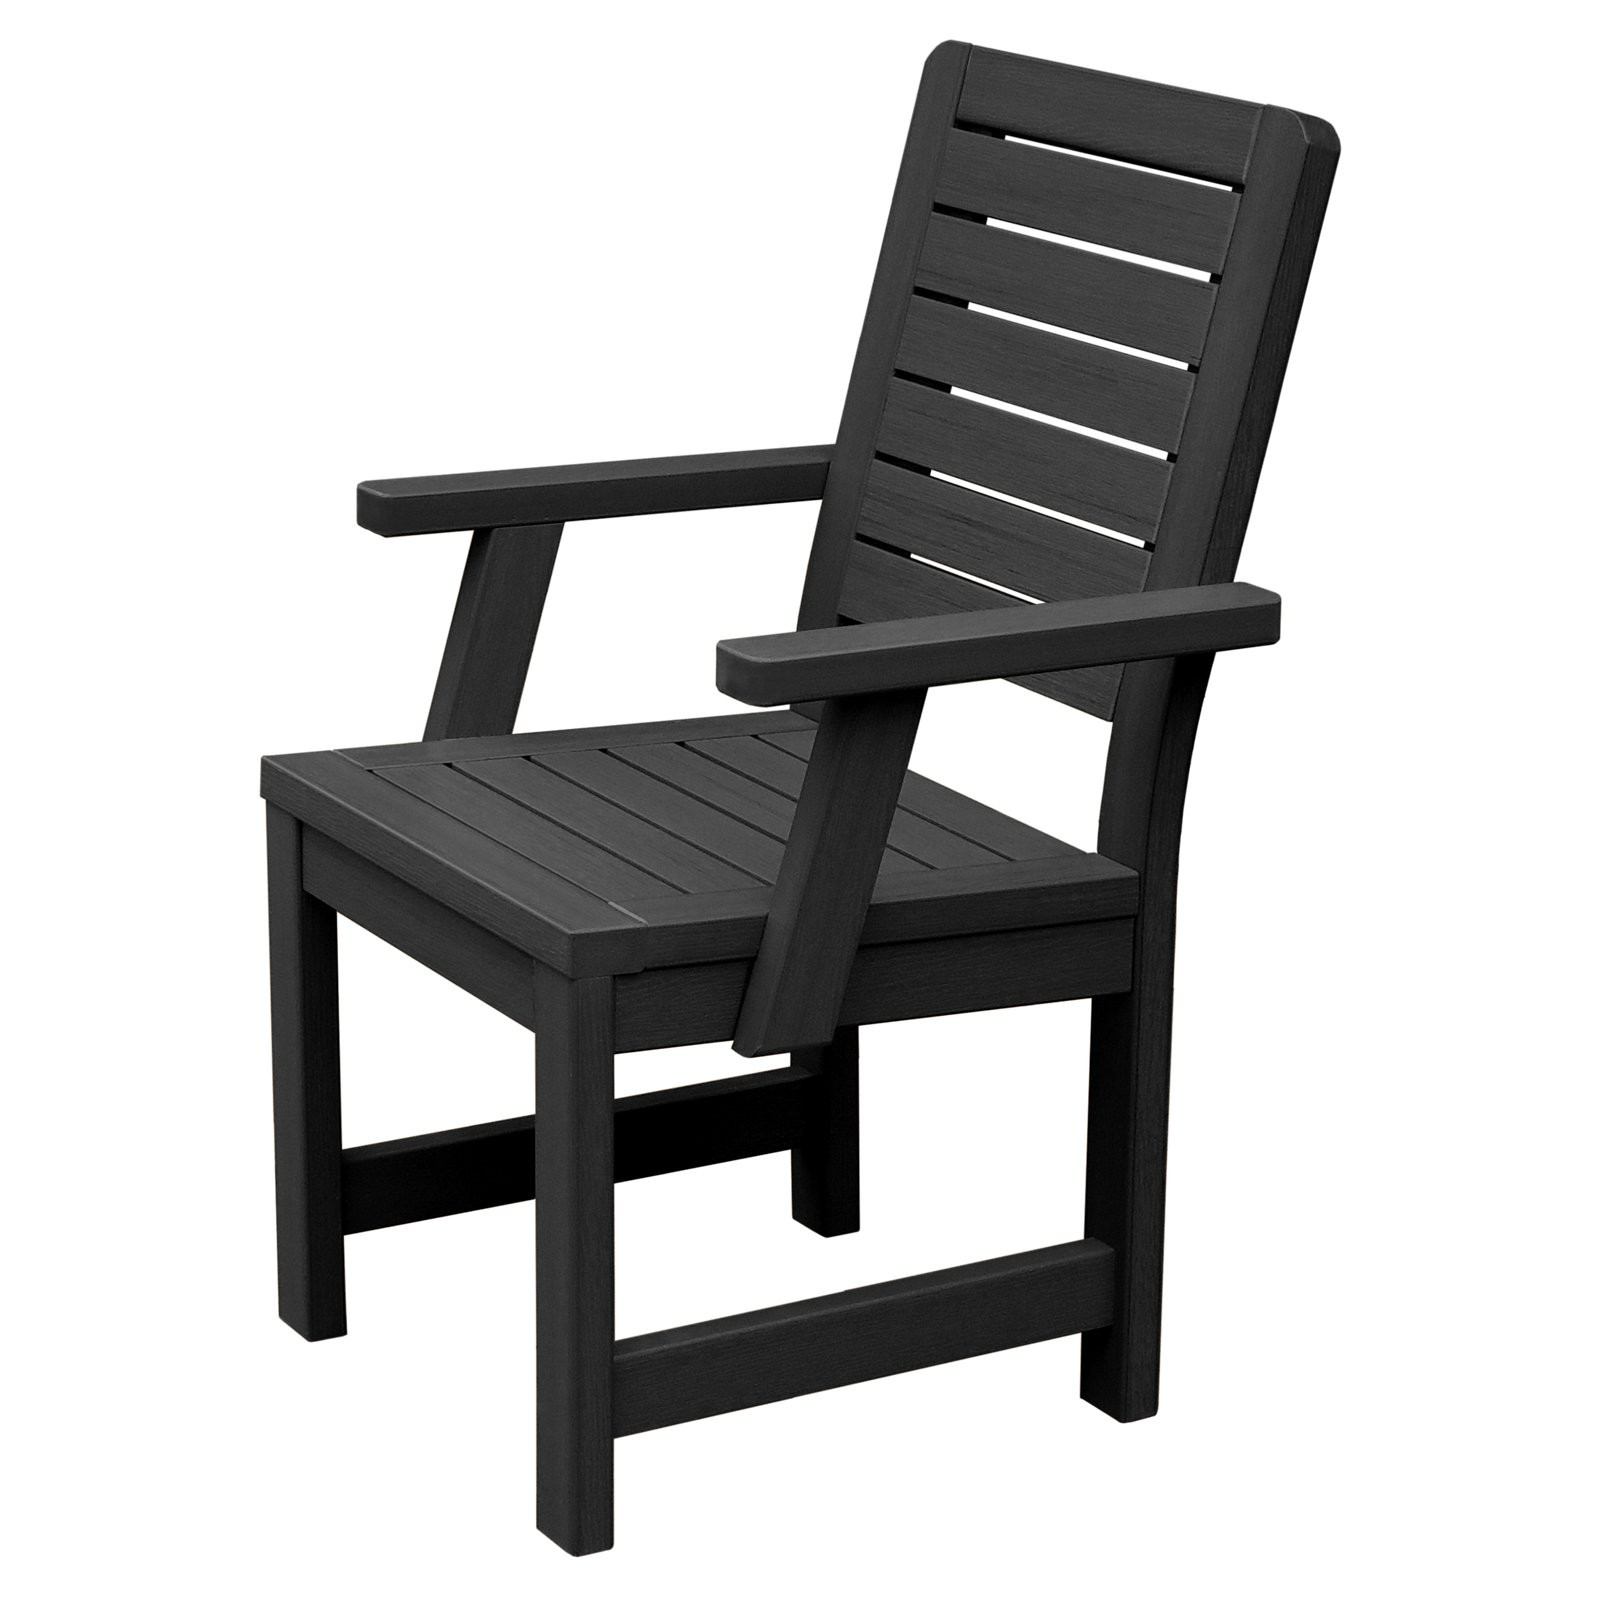 Best ideas about Outdoor Chairs Walmart . Save or Pin Sling Black Outdoor Chairs Bamboo Set of 2 Walmart Now.